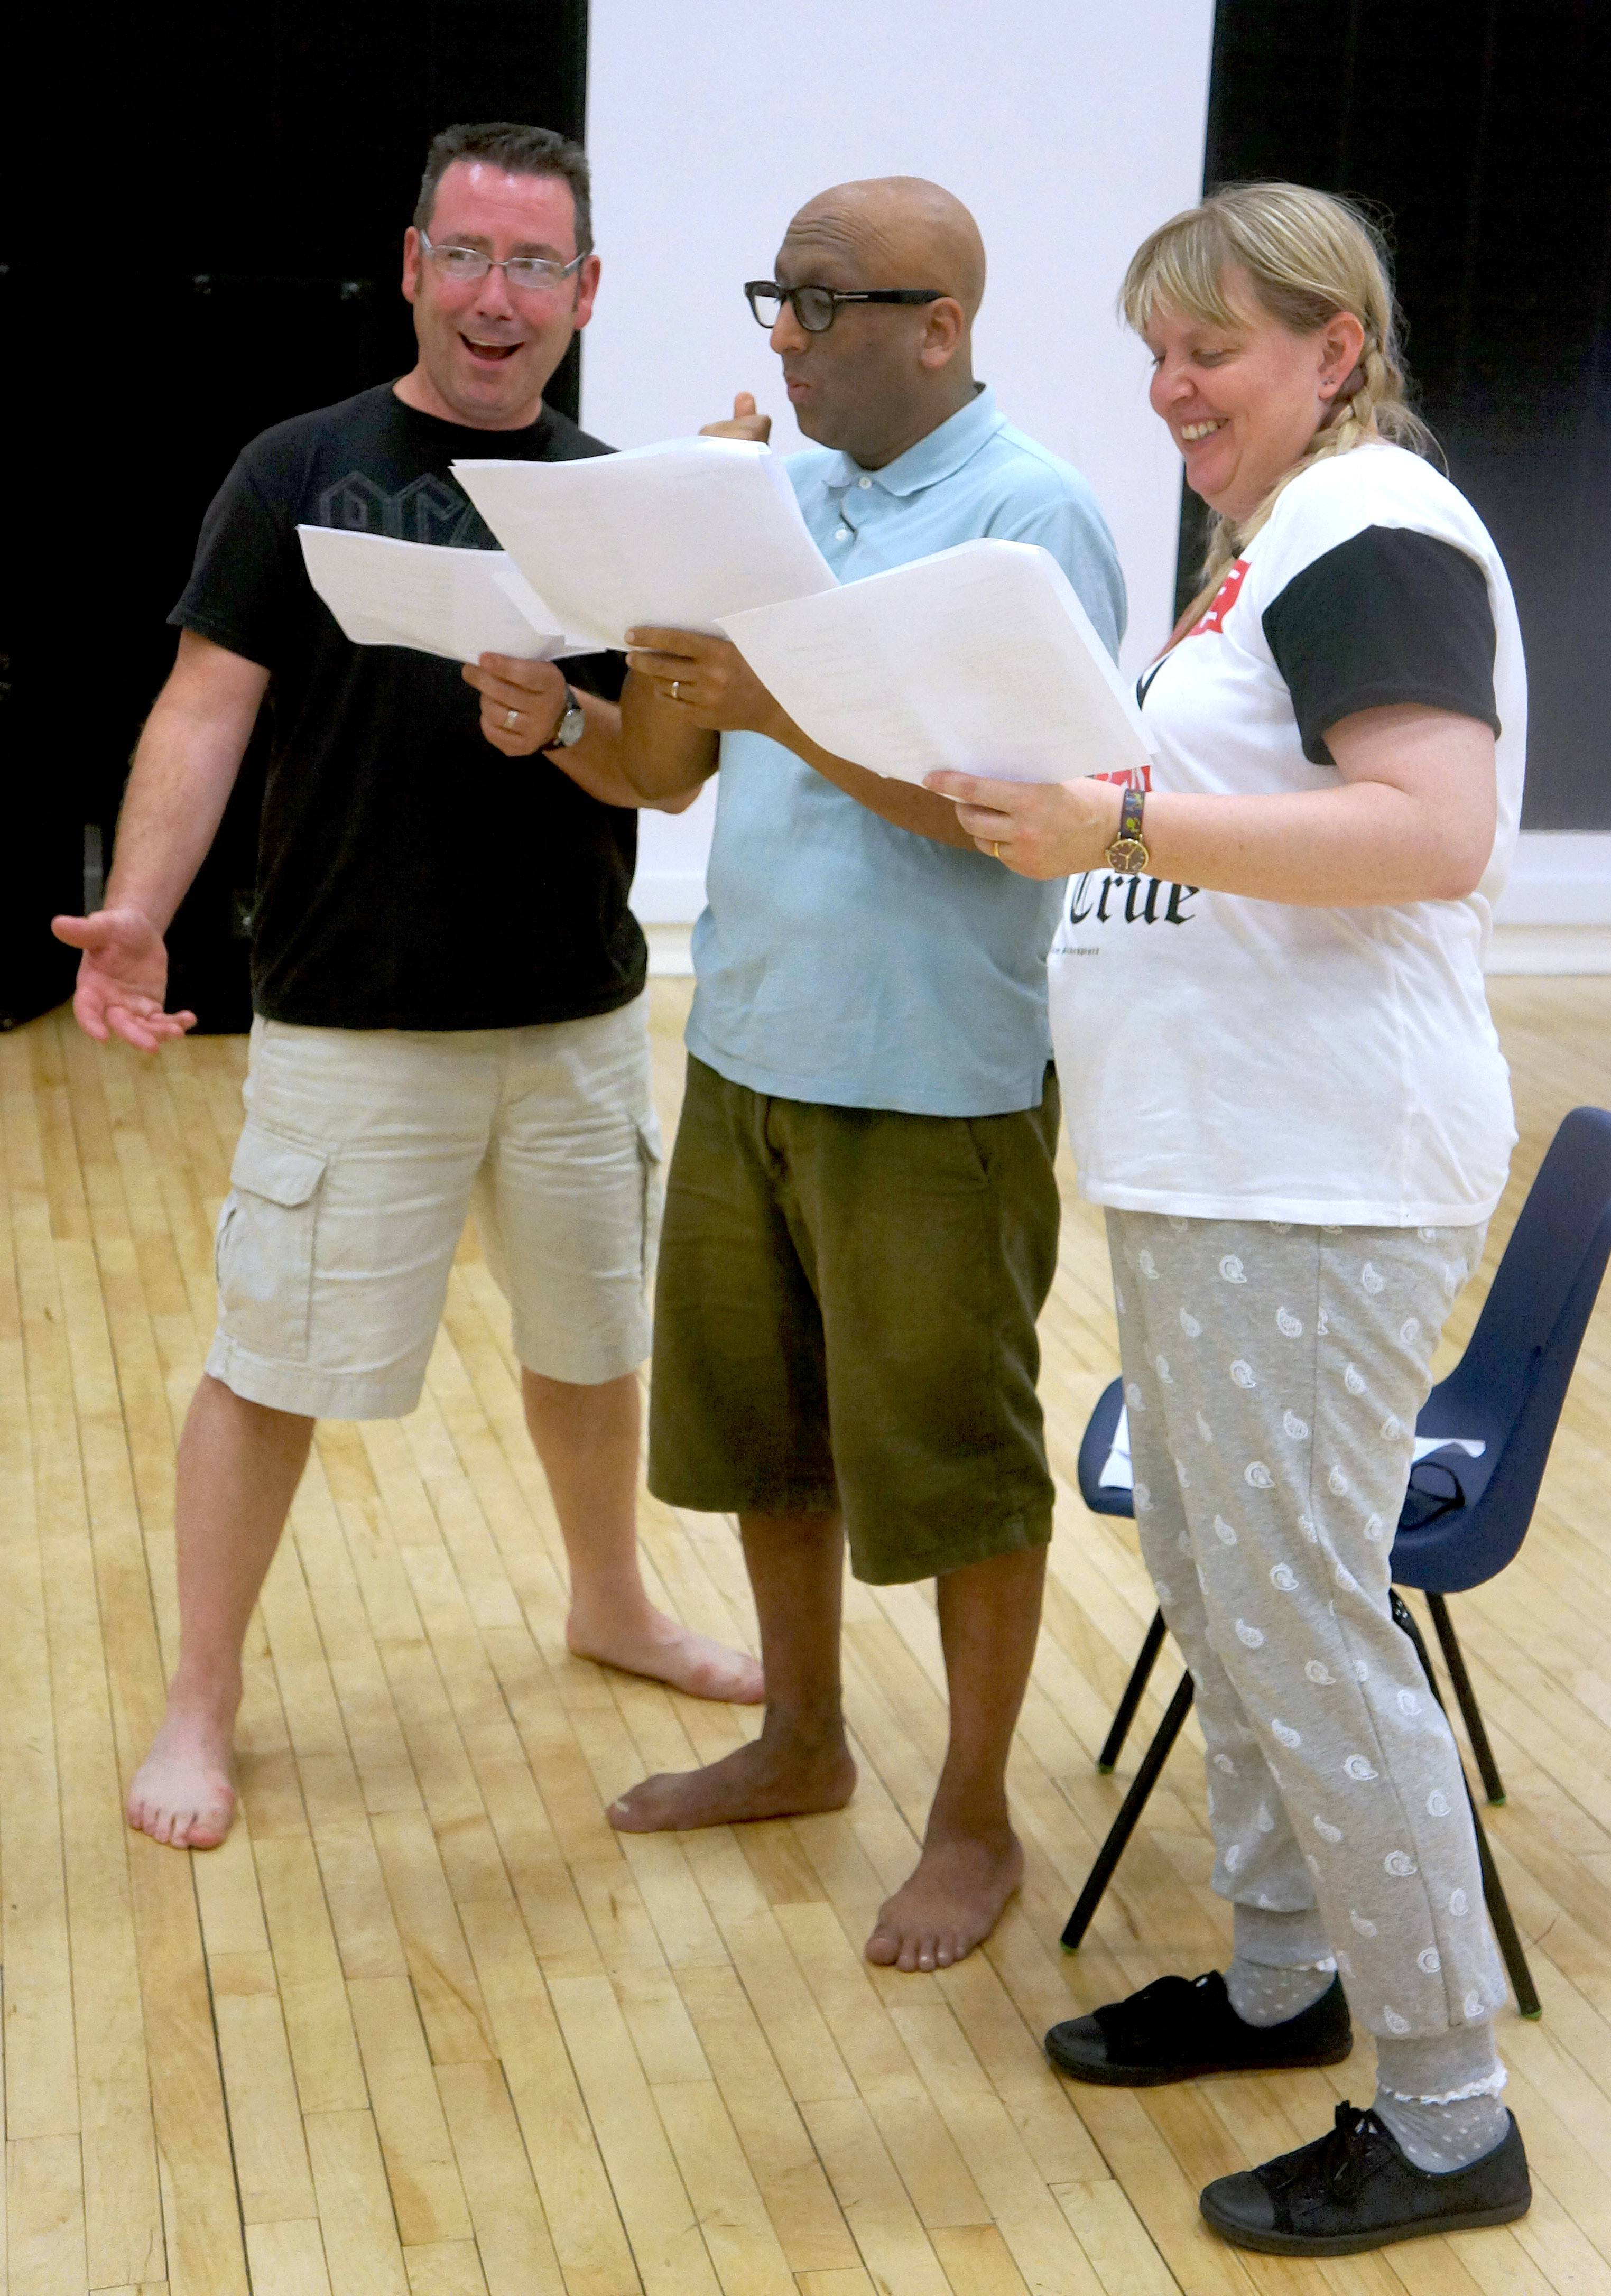 """This was a language exercise about the play King 'Henry IV,'"" said Sean Hargadon, at left. ""We're given the actor playing Henry different words at different times in the scene. It is all very random and fun."